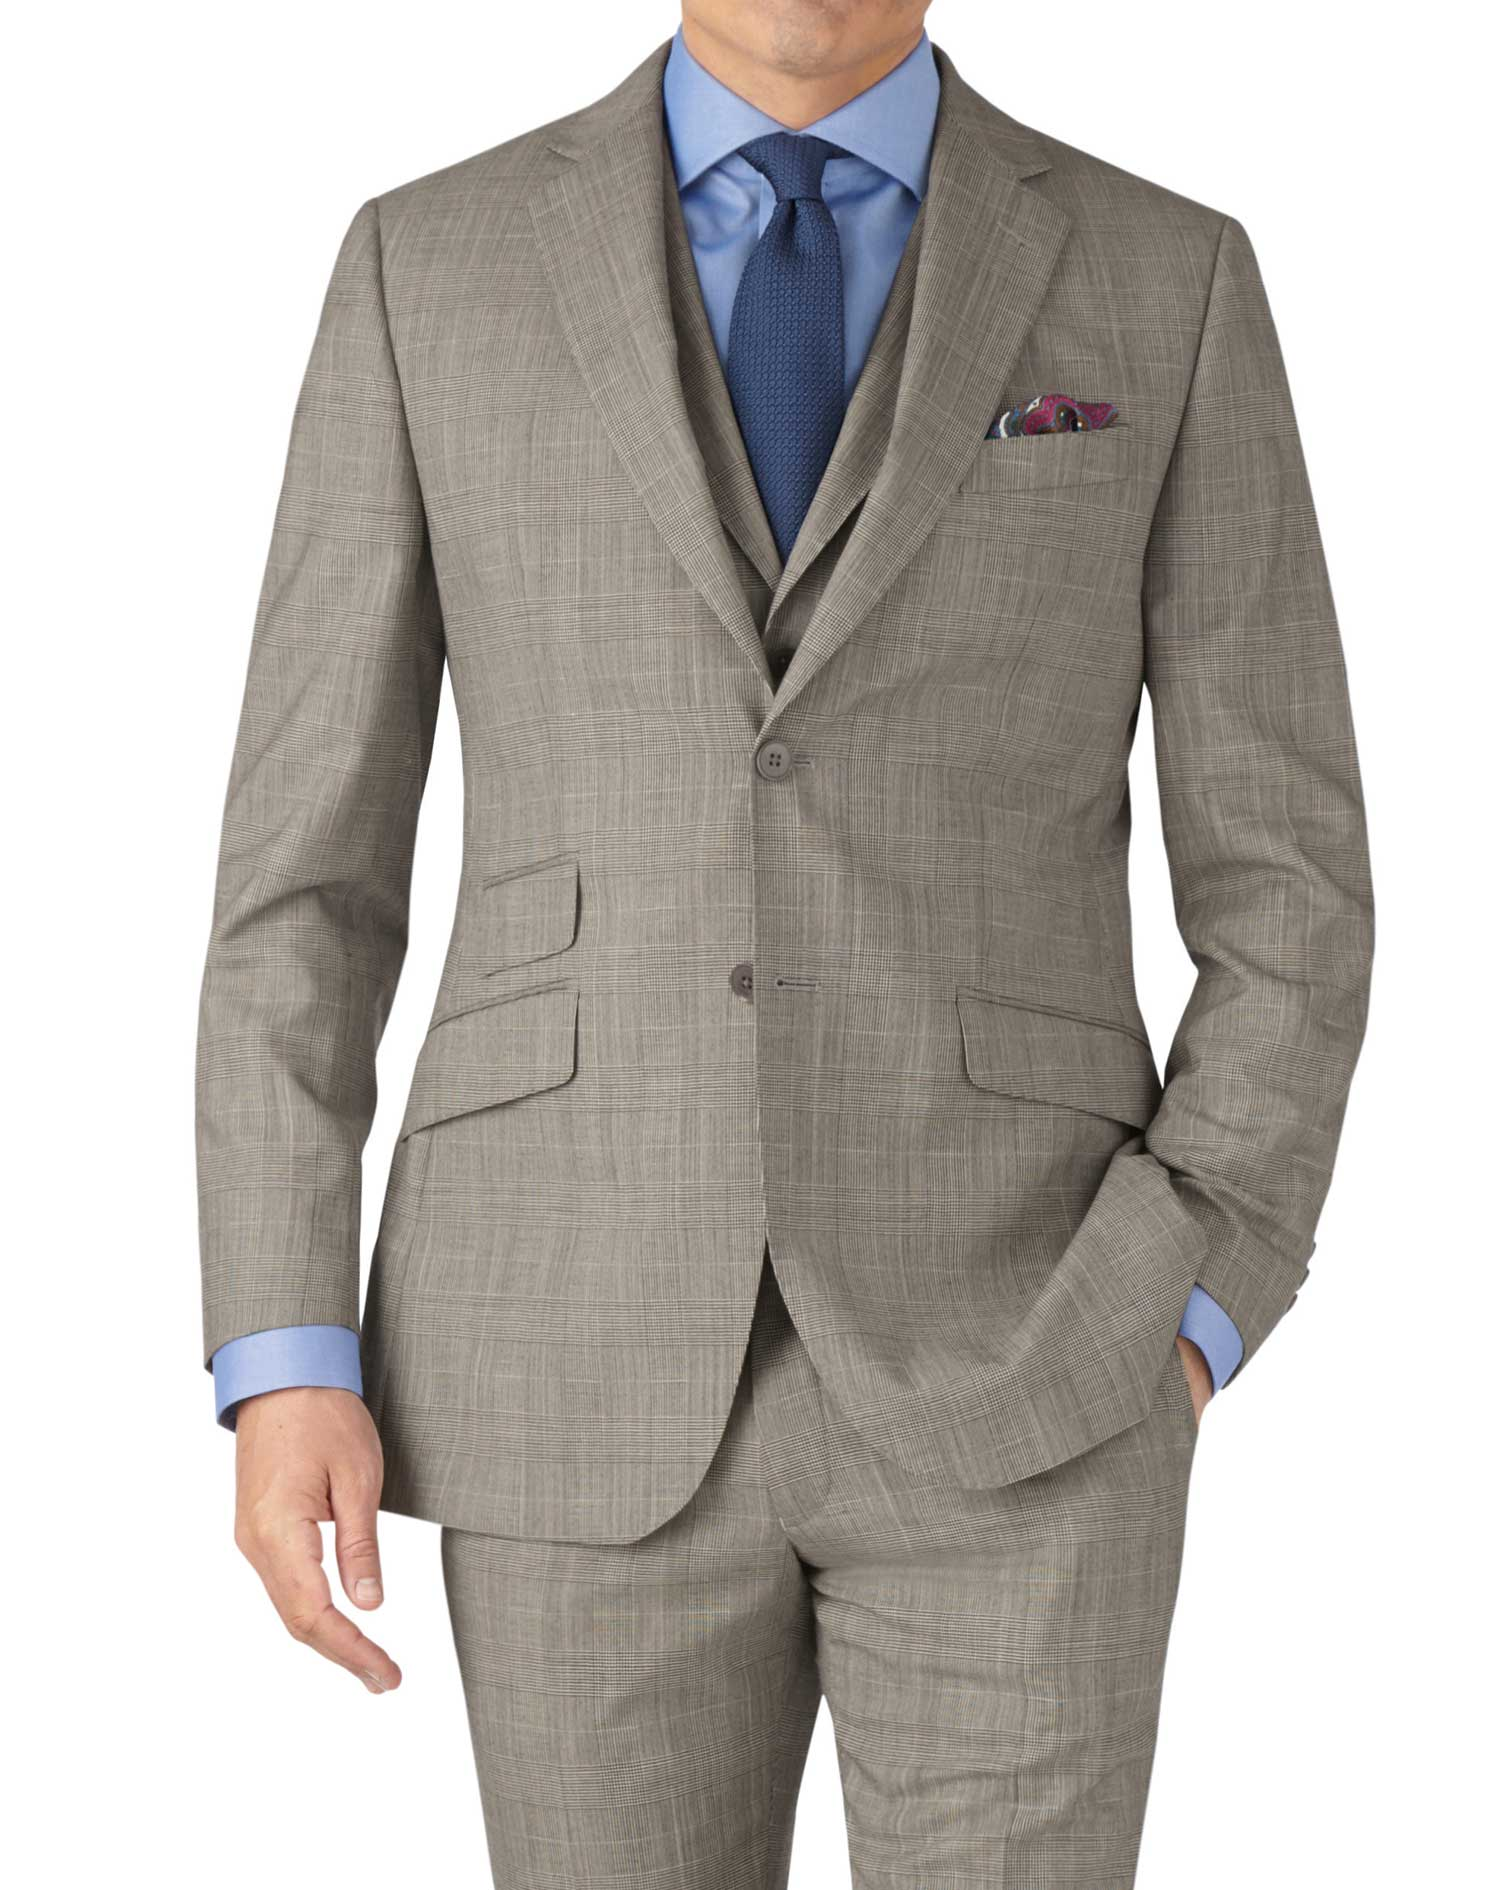 Grey Prince Of Wales Check Slim Fit Panama Business Suit Wool Jacket Size 36 Regular by Charles Tyrw